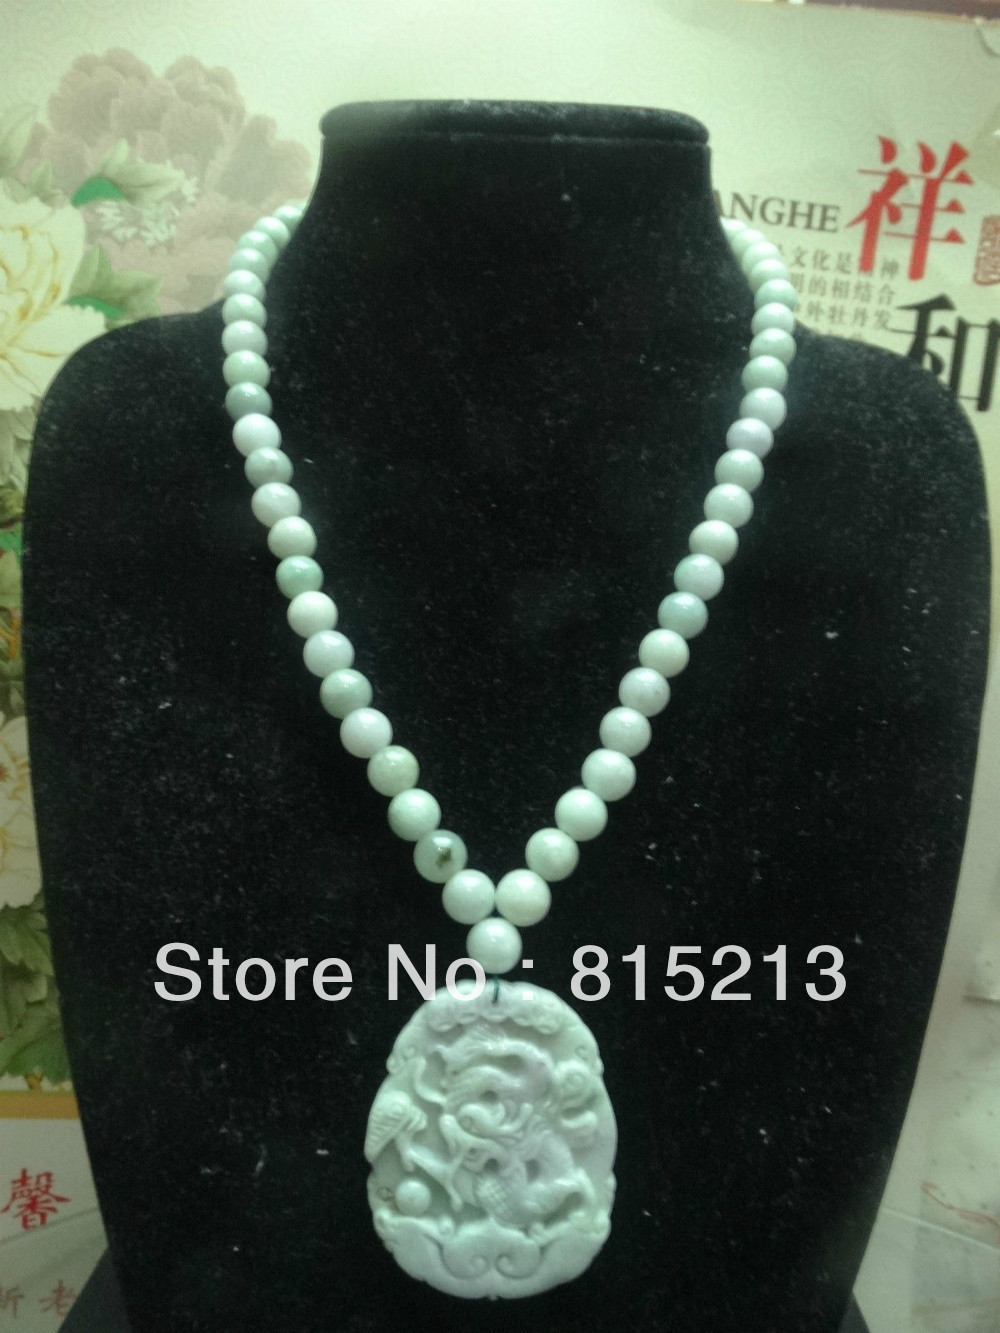 Free shipping ddh006 Light green Natural A Jadeite Beads Necklace/lavender&green dragon pendant 5.3 pretty handwork natural light green grade a jadeite buddha guanyin lucky amulet pendant free necklace certificate fine jewelry